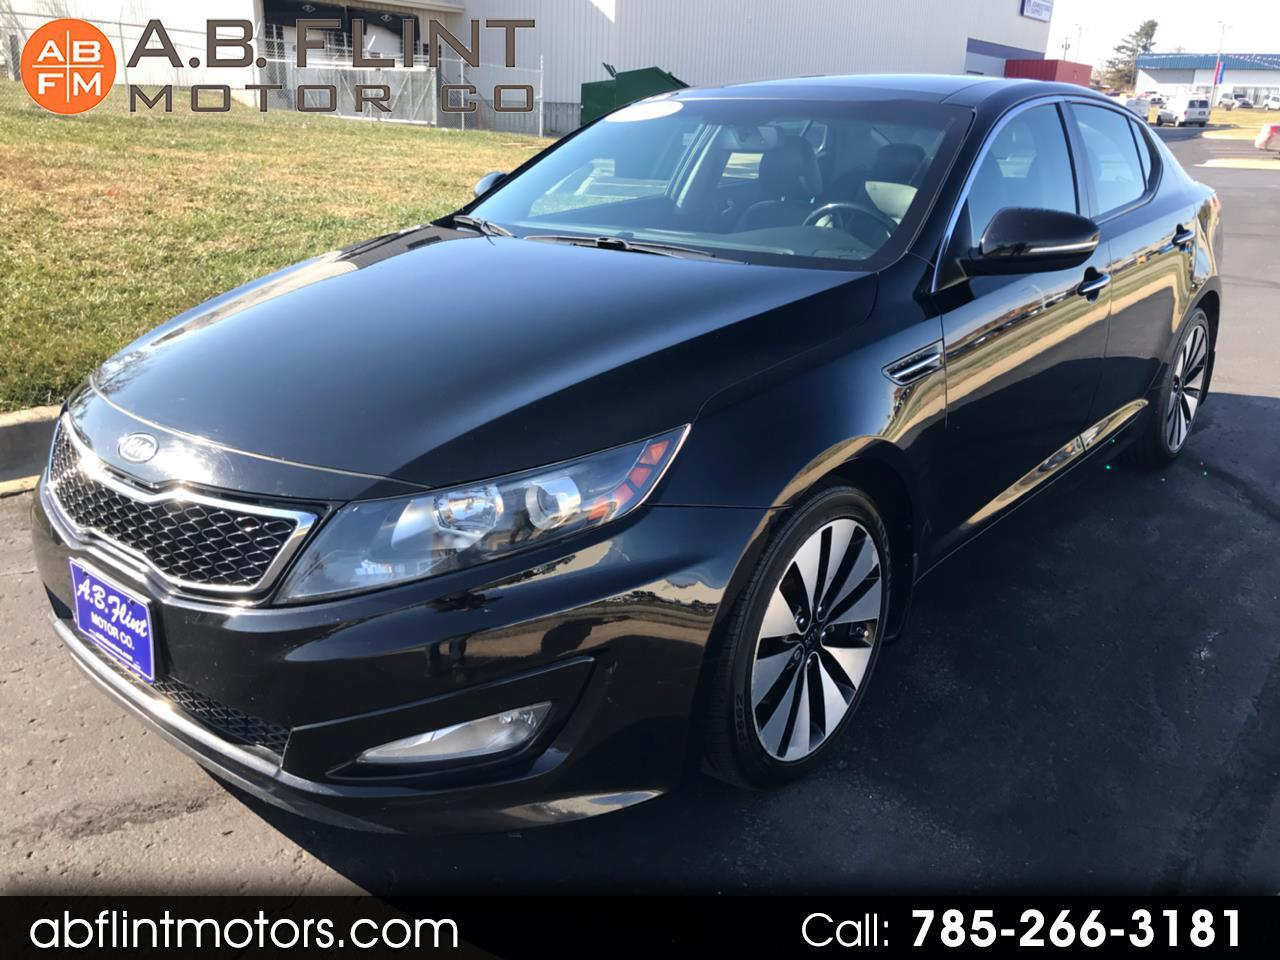 2012 Kia Optima 4dr Sdn SX w/Limited Pkg